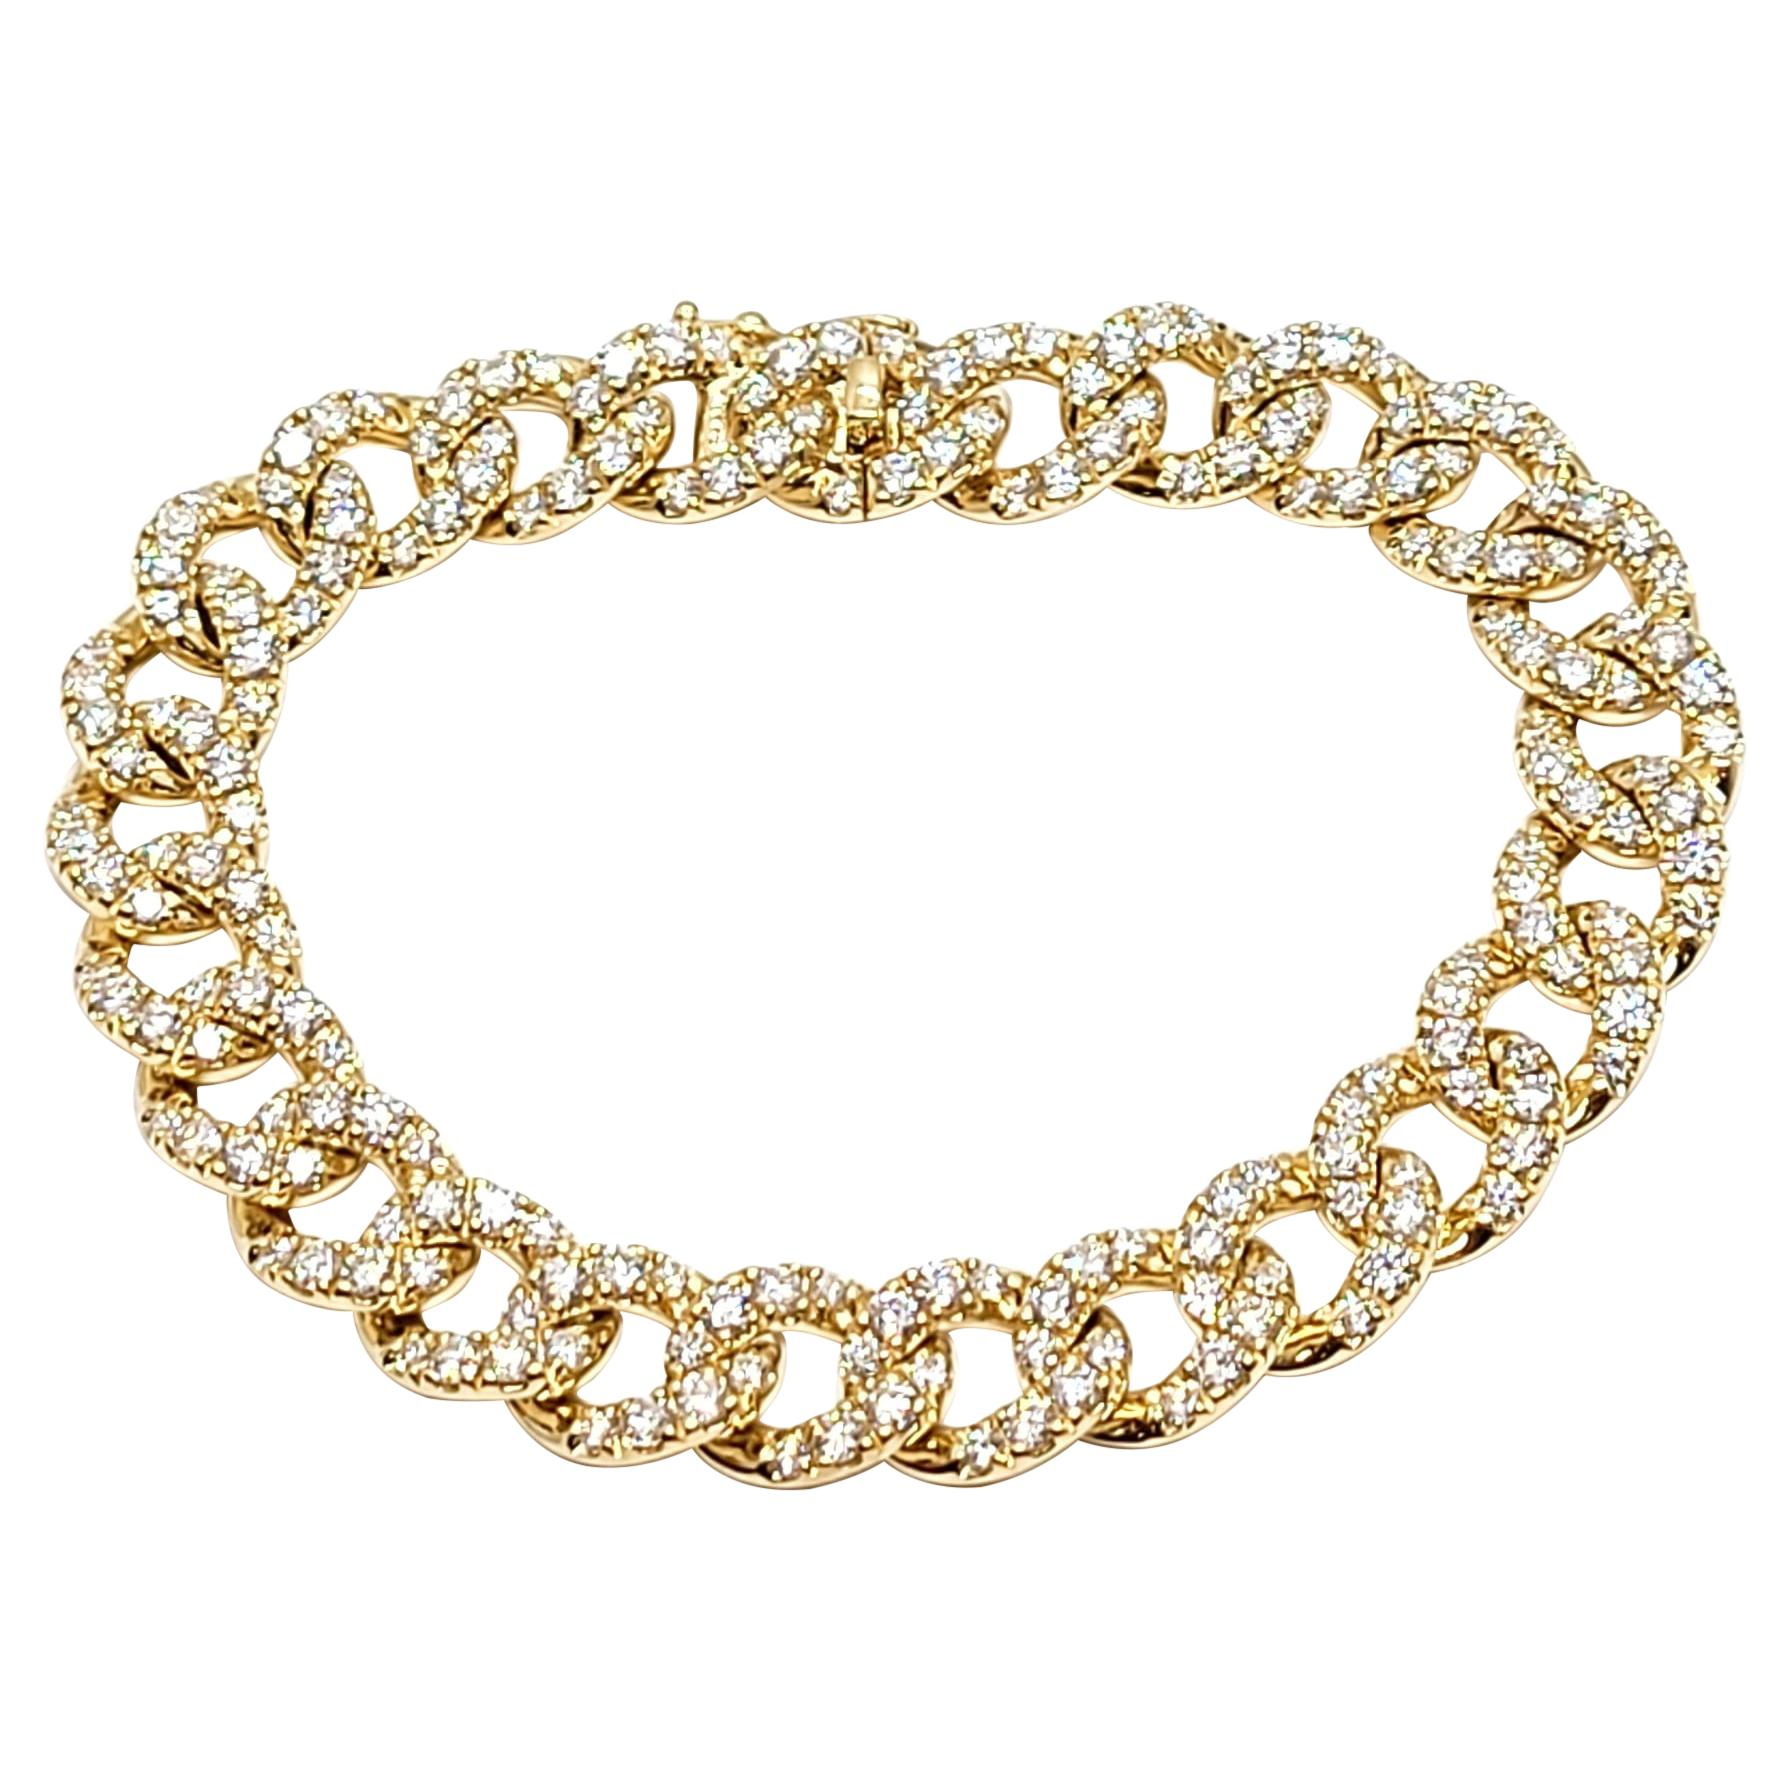 Andreoli Yellow Gold and Diamond Cuban Link Bracelet